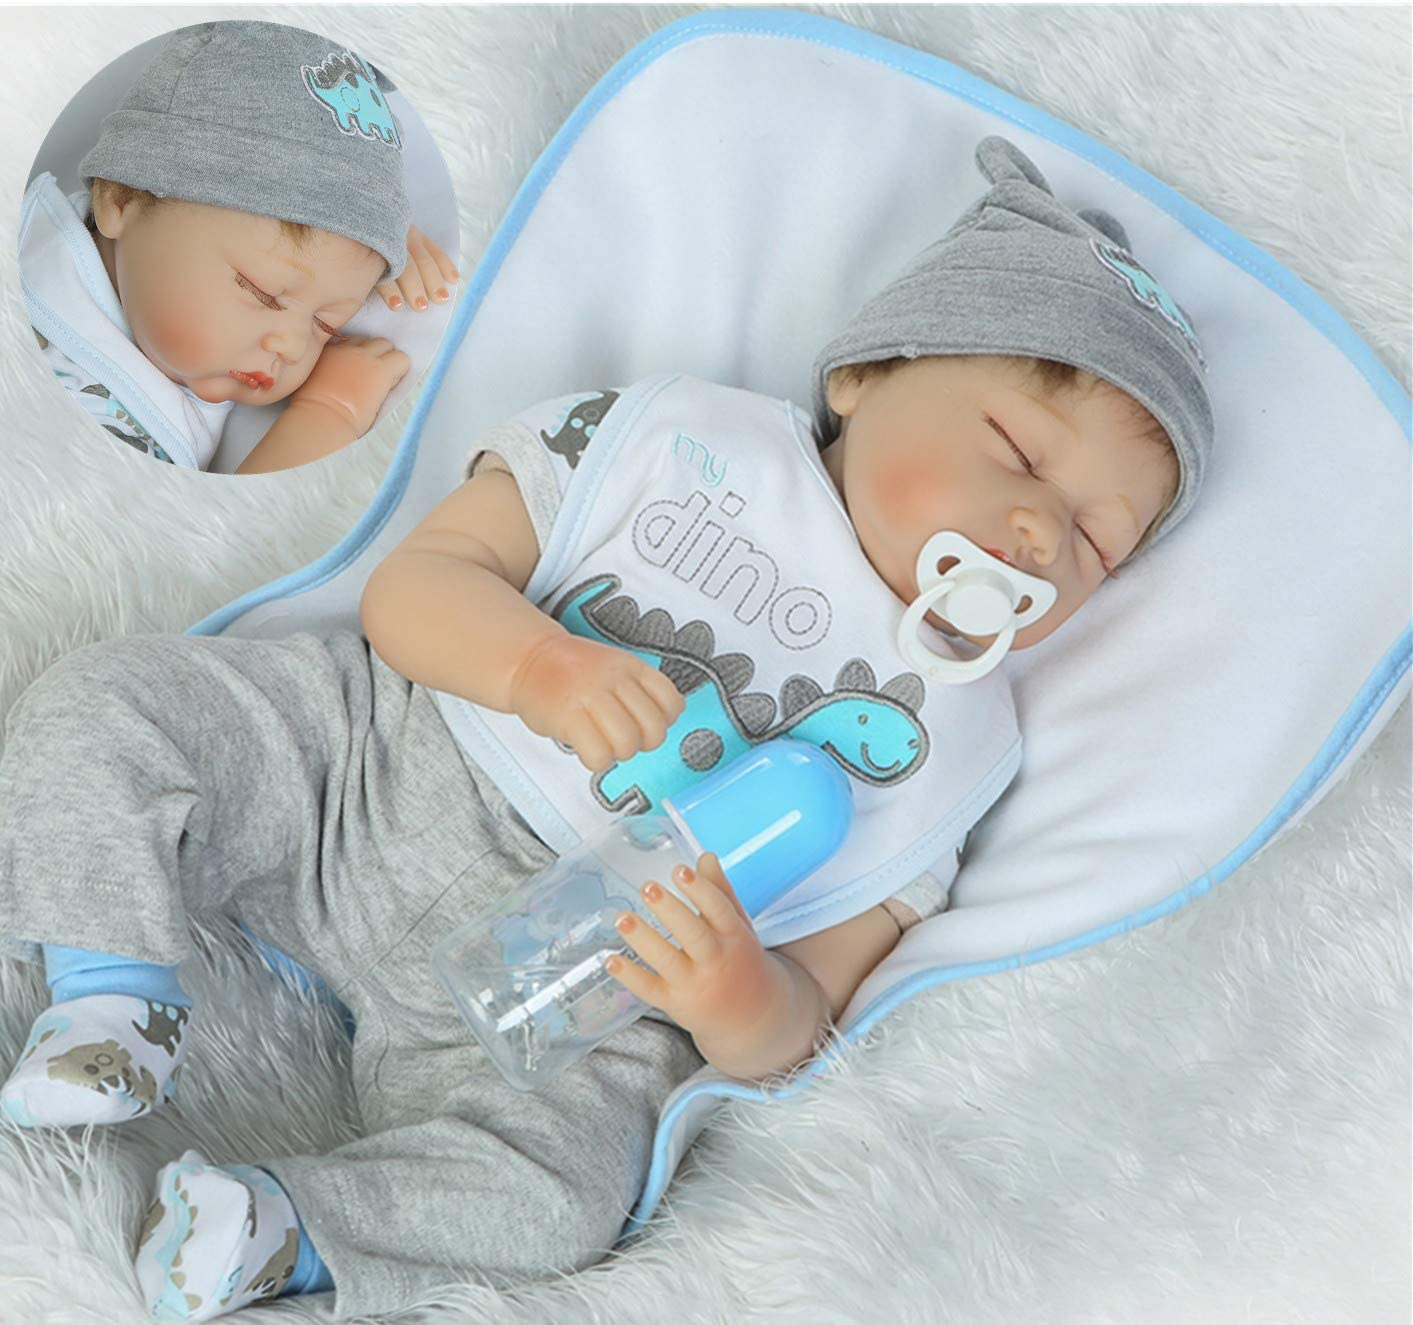 Realistic Max 46% OFF Sleeping Reborn Baby Doll Boy Silicone Deluxe 22 Vinyl I Soft